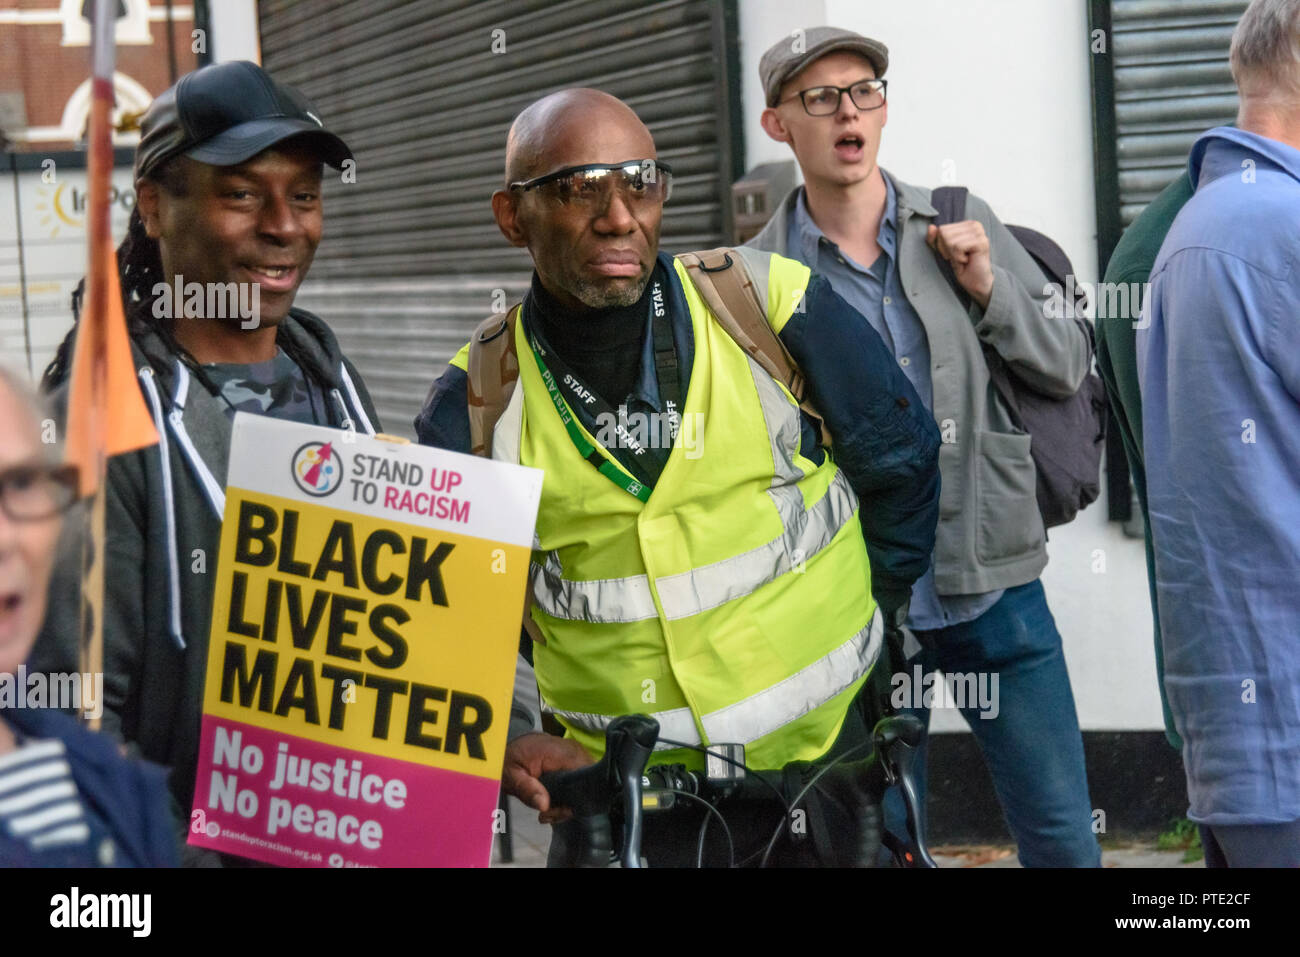 London, UK. October 9th 2018. People at the  rally outside the New Atlas Cafe Restaurant where a young black man was attacked by police who used obviously unnecessary force when arresting him on suspicion of having been involved in a knife attack. He was assaulted by six officers, and was viciously kicked while officers struggled to handcuff him, andwhen he was well under control and held on the ground he was sprayed in the face with CS gas. Credit: Peter Marshall/Alamy Live News - Stock Image